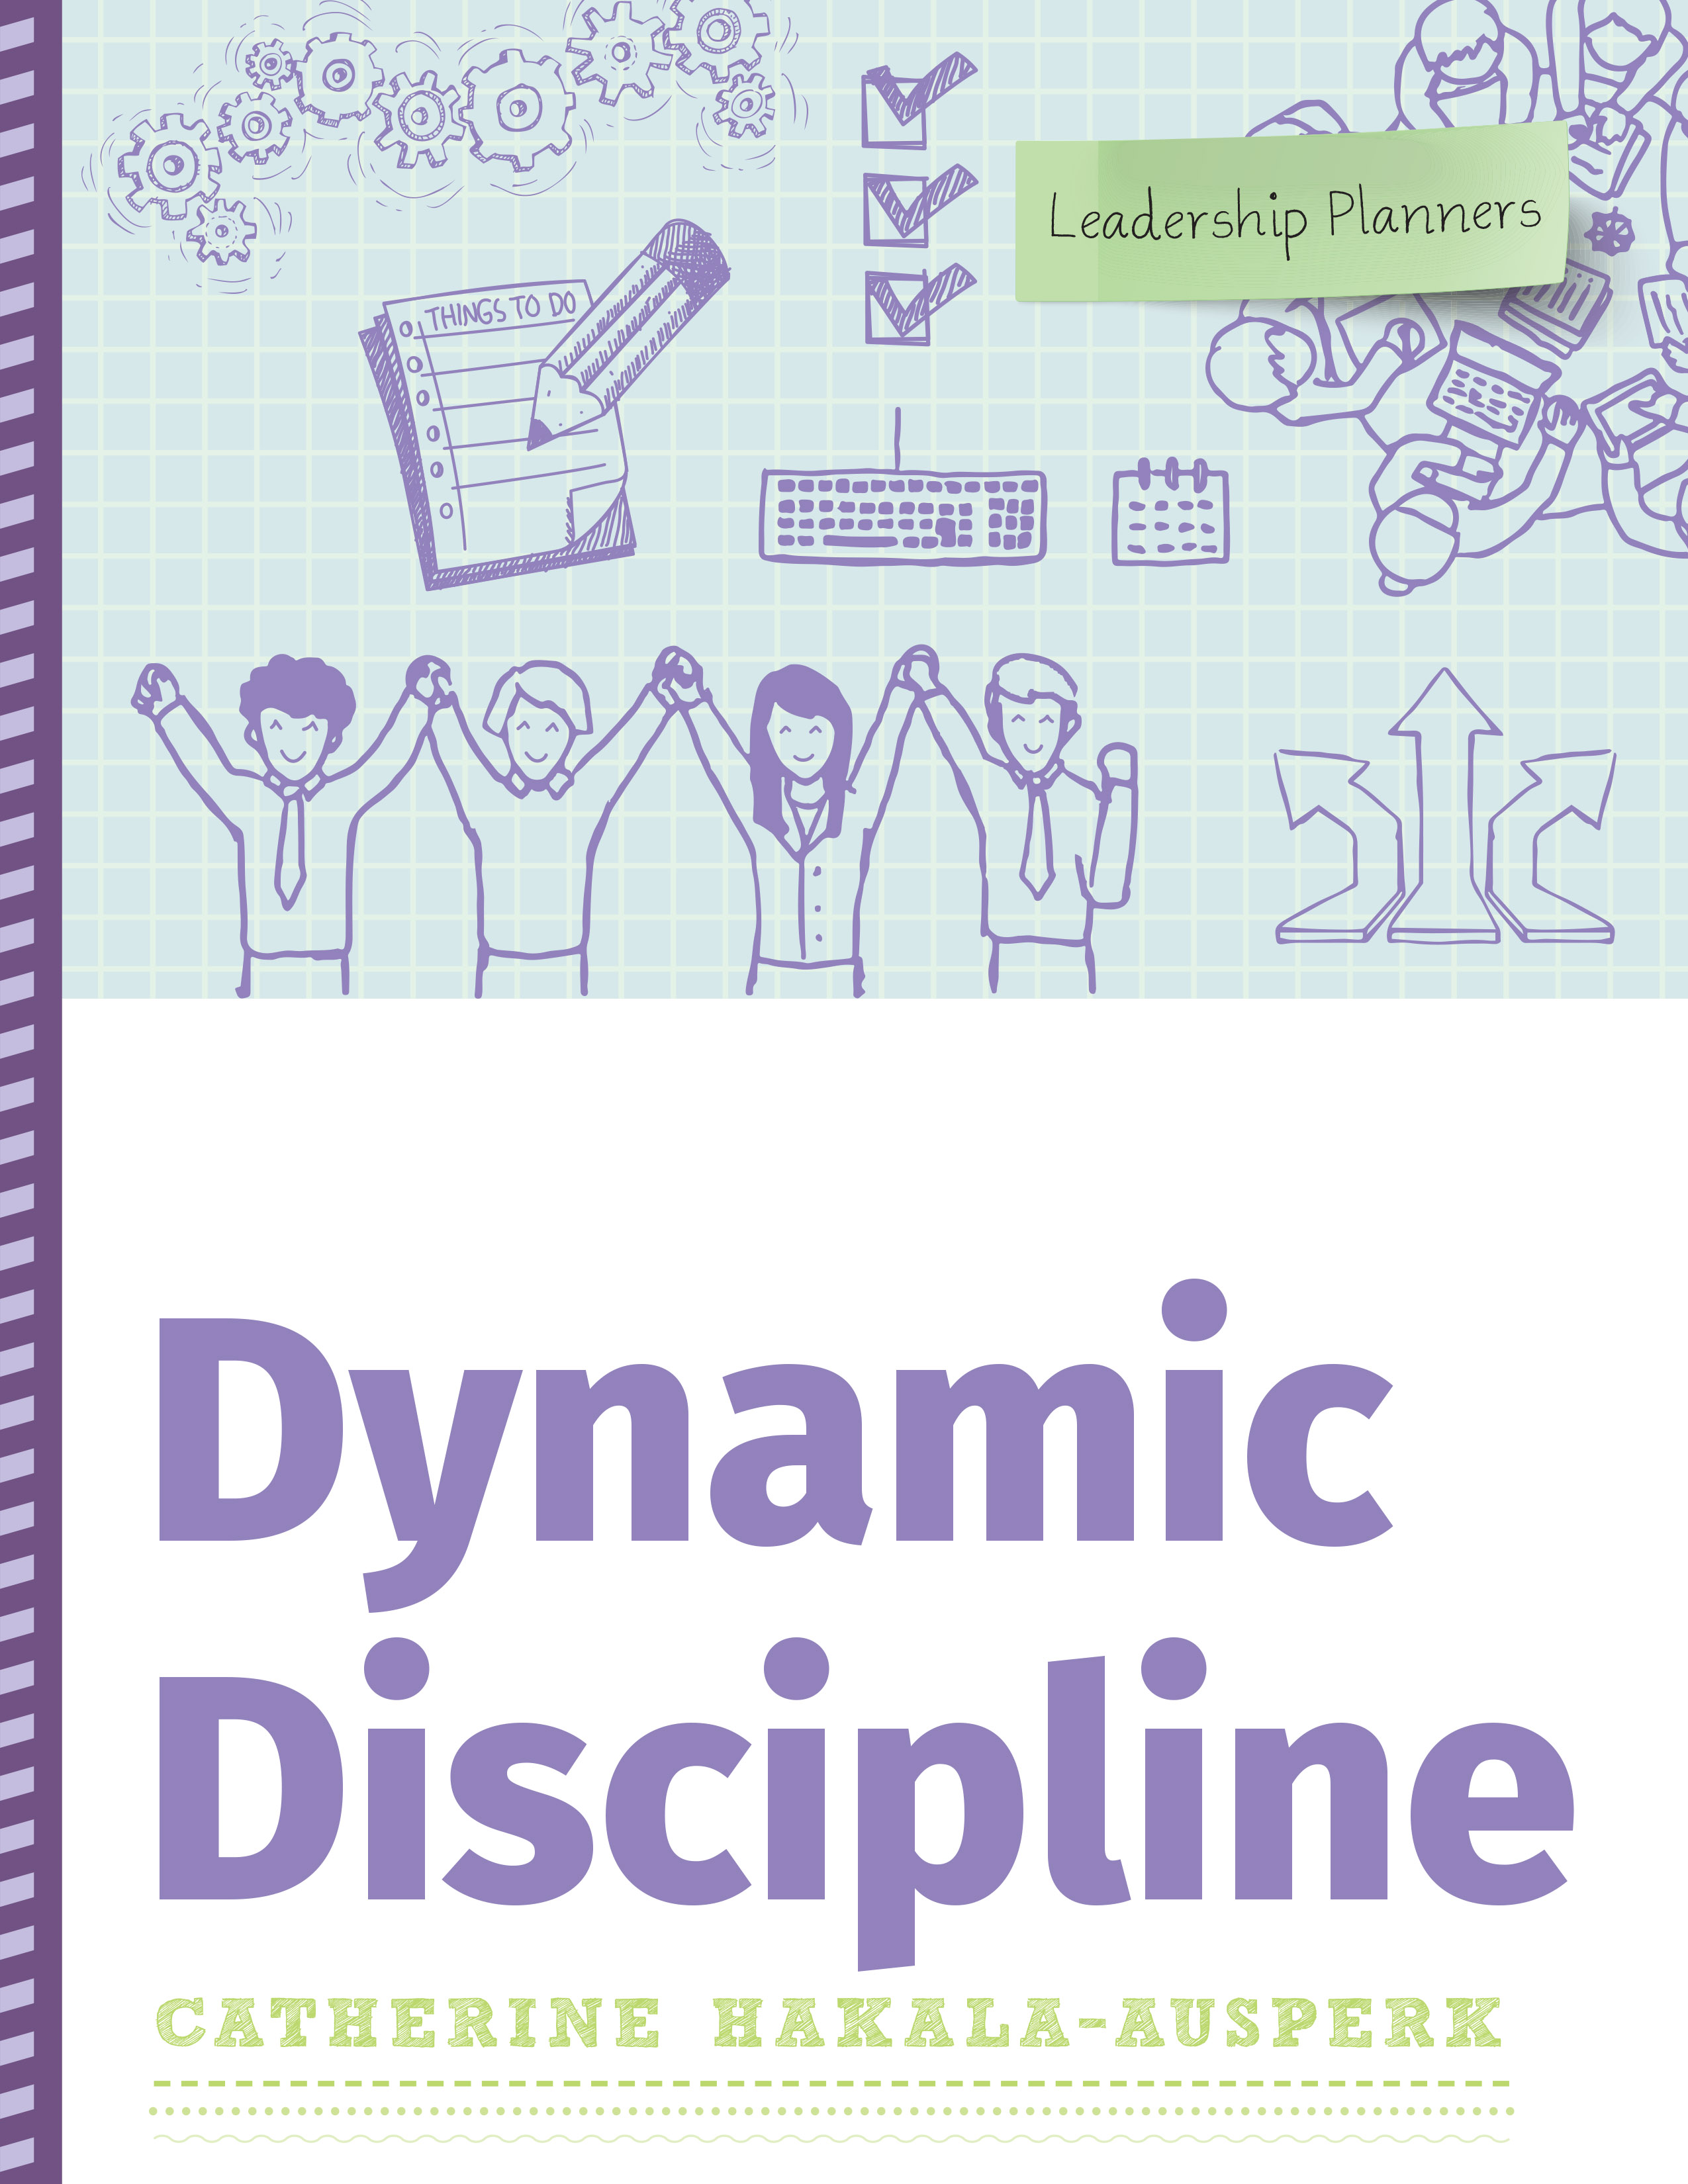 Dynamic Discipline (Leadership Planners Series)